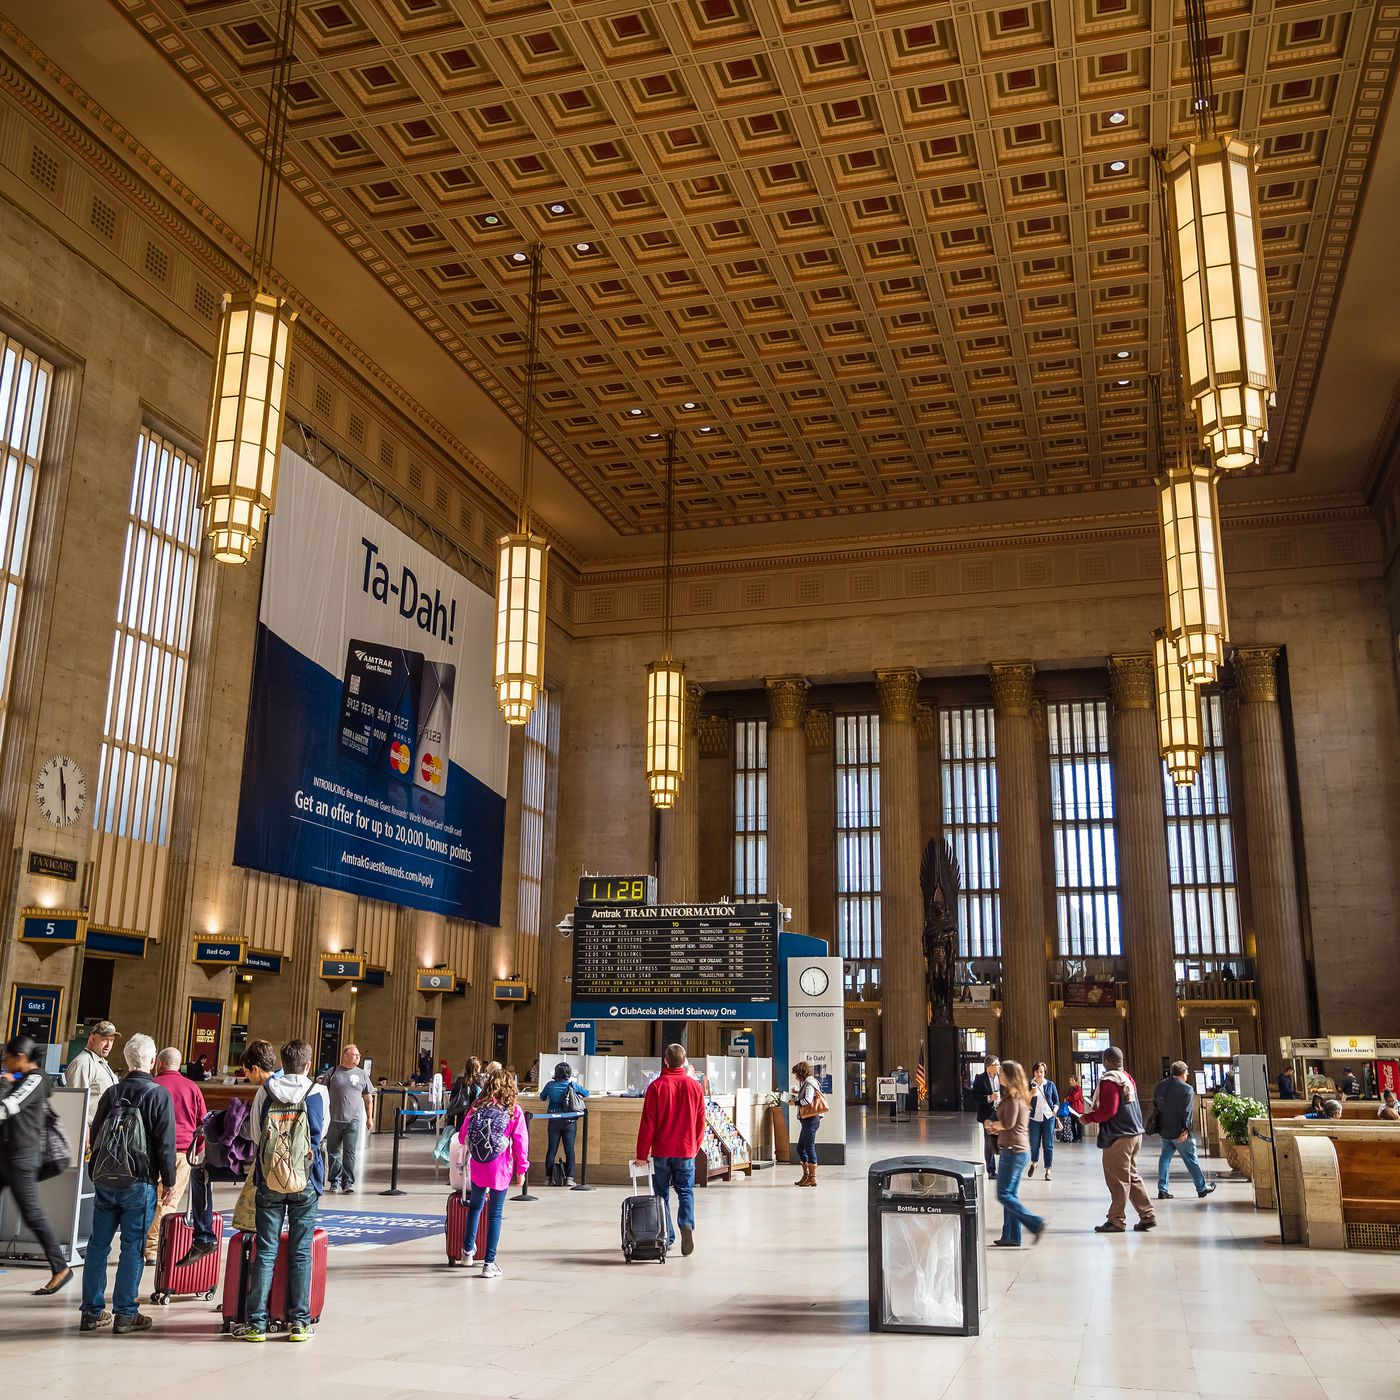 30th Street Station in Philadelphia: Everything you need to